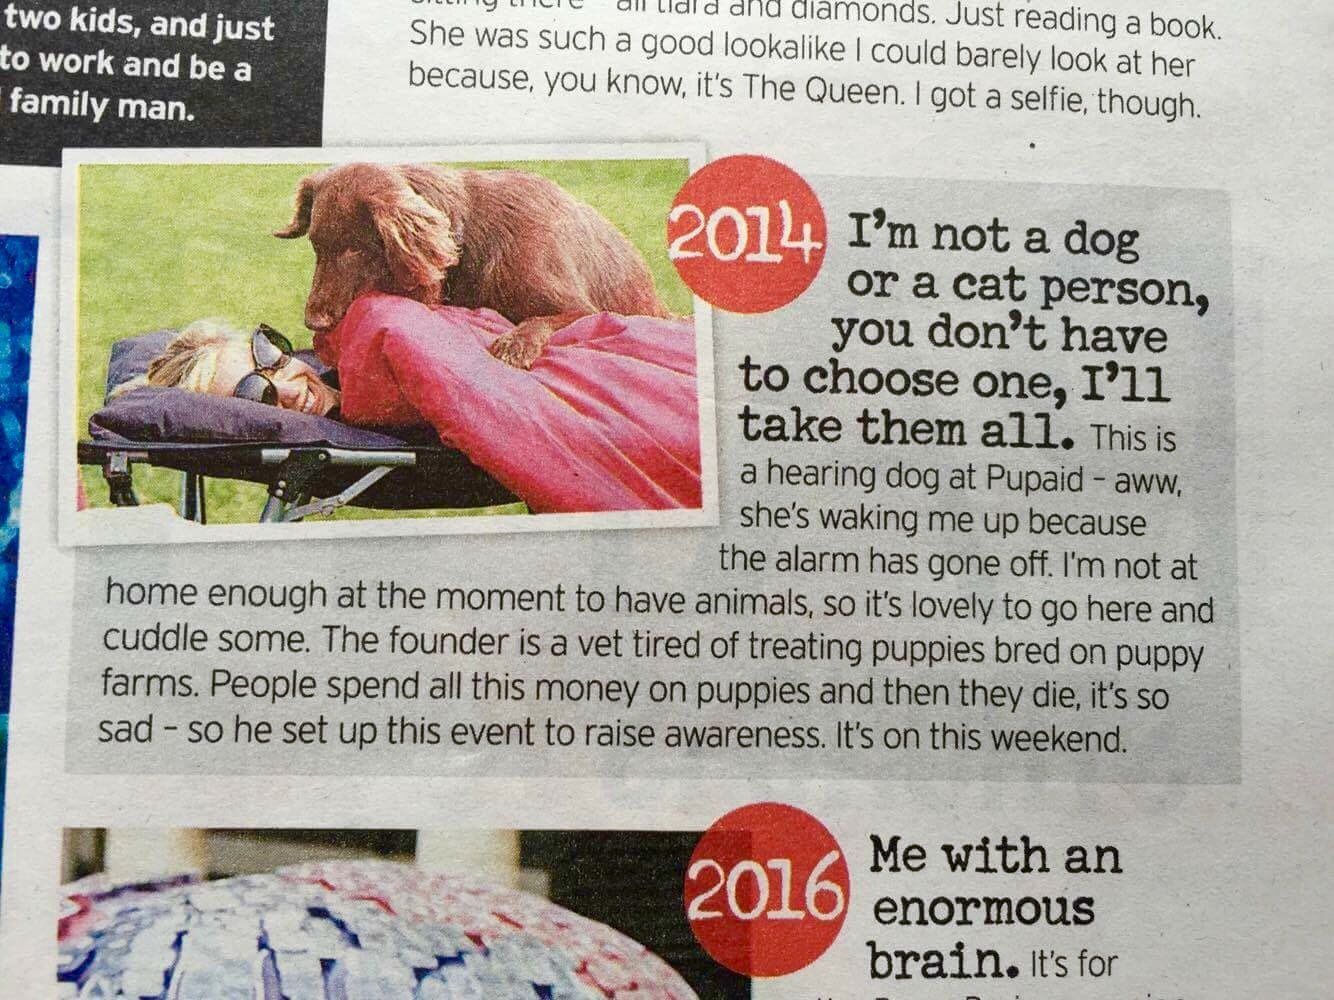 RT @pupaid: Massive thanks fab supporter @RachelRileyRR for mentioning #PupAid2016 in your interview :) #wheresmum #adopt https://t.co/QMhD…